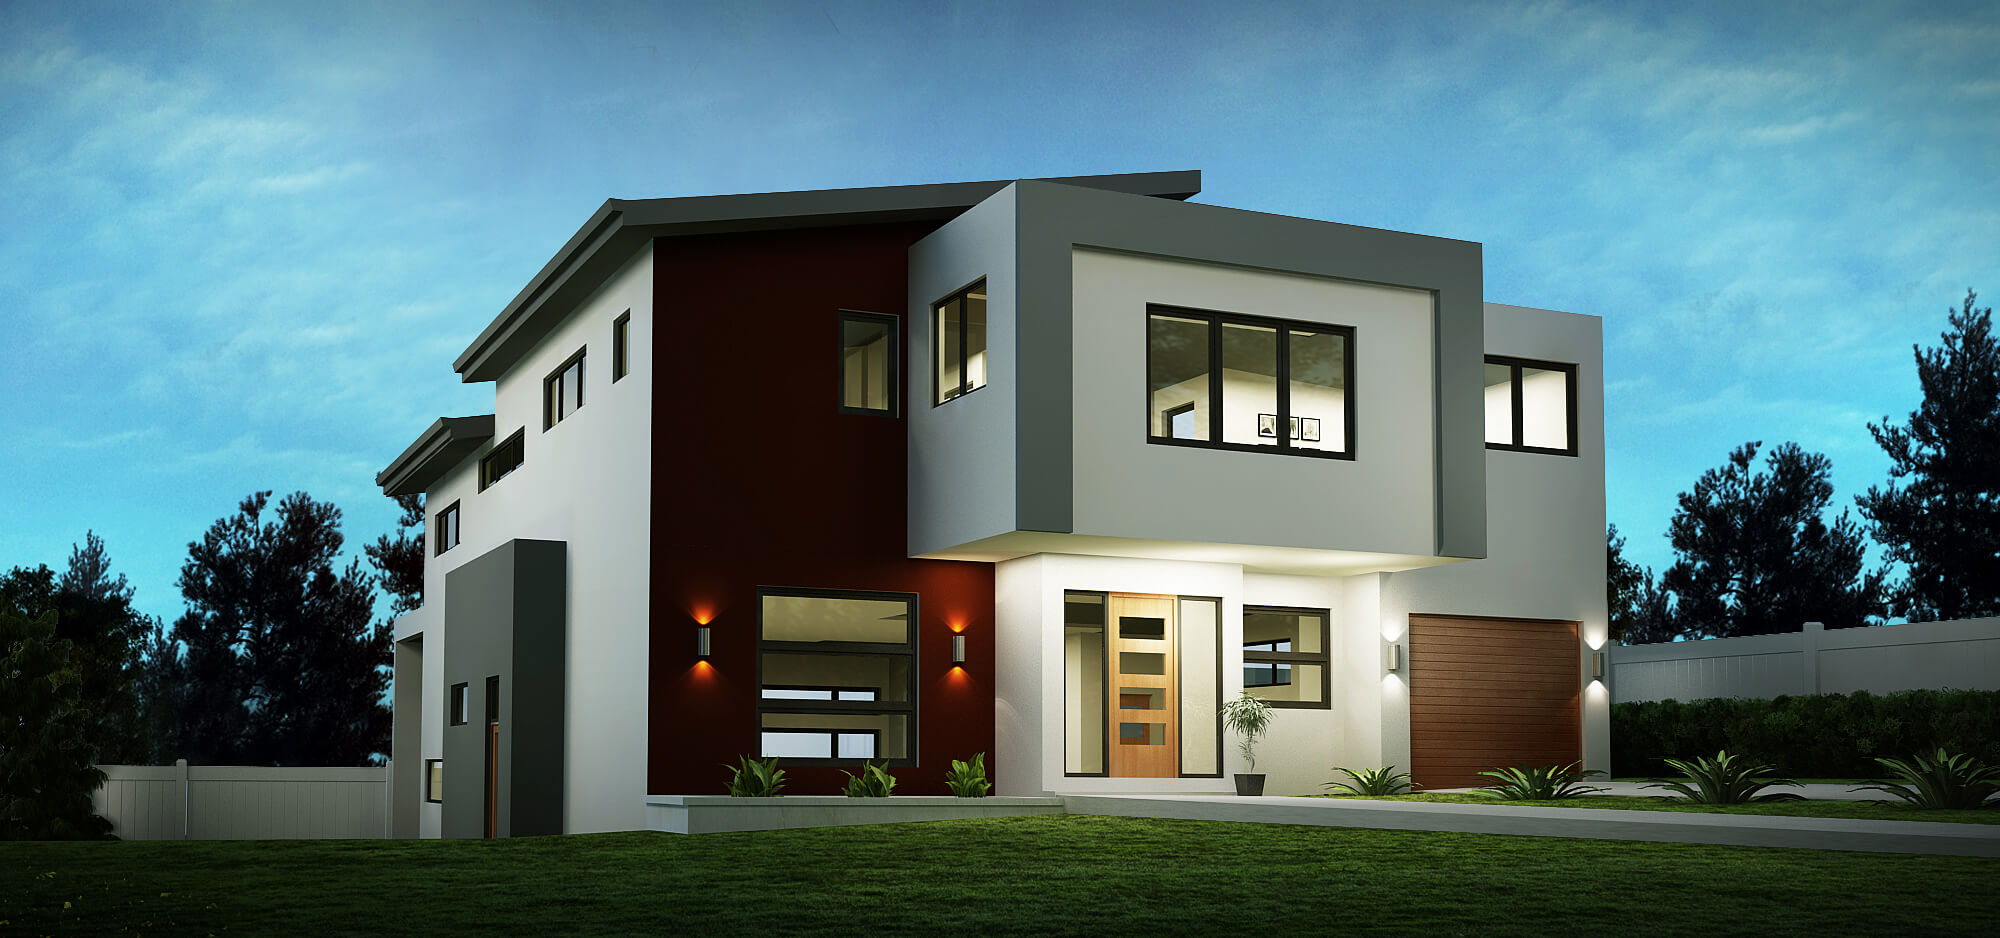 Sloping house block designs custom home designs for Home designs for sloping blocks